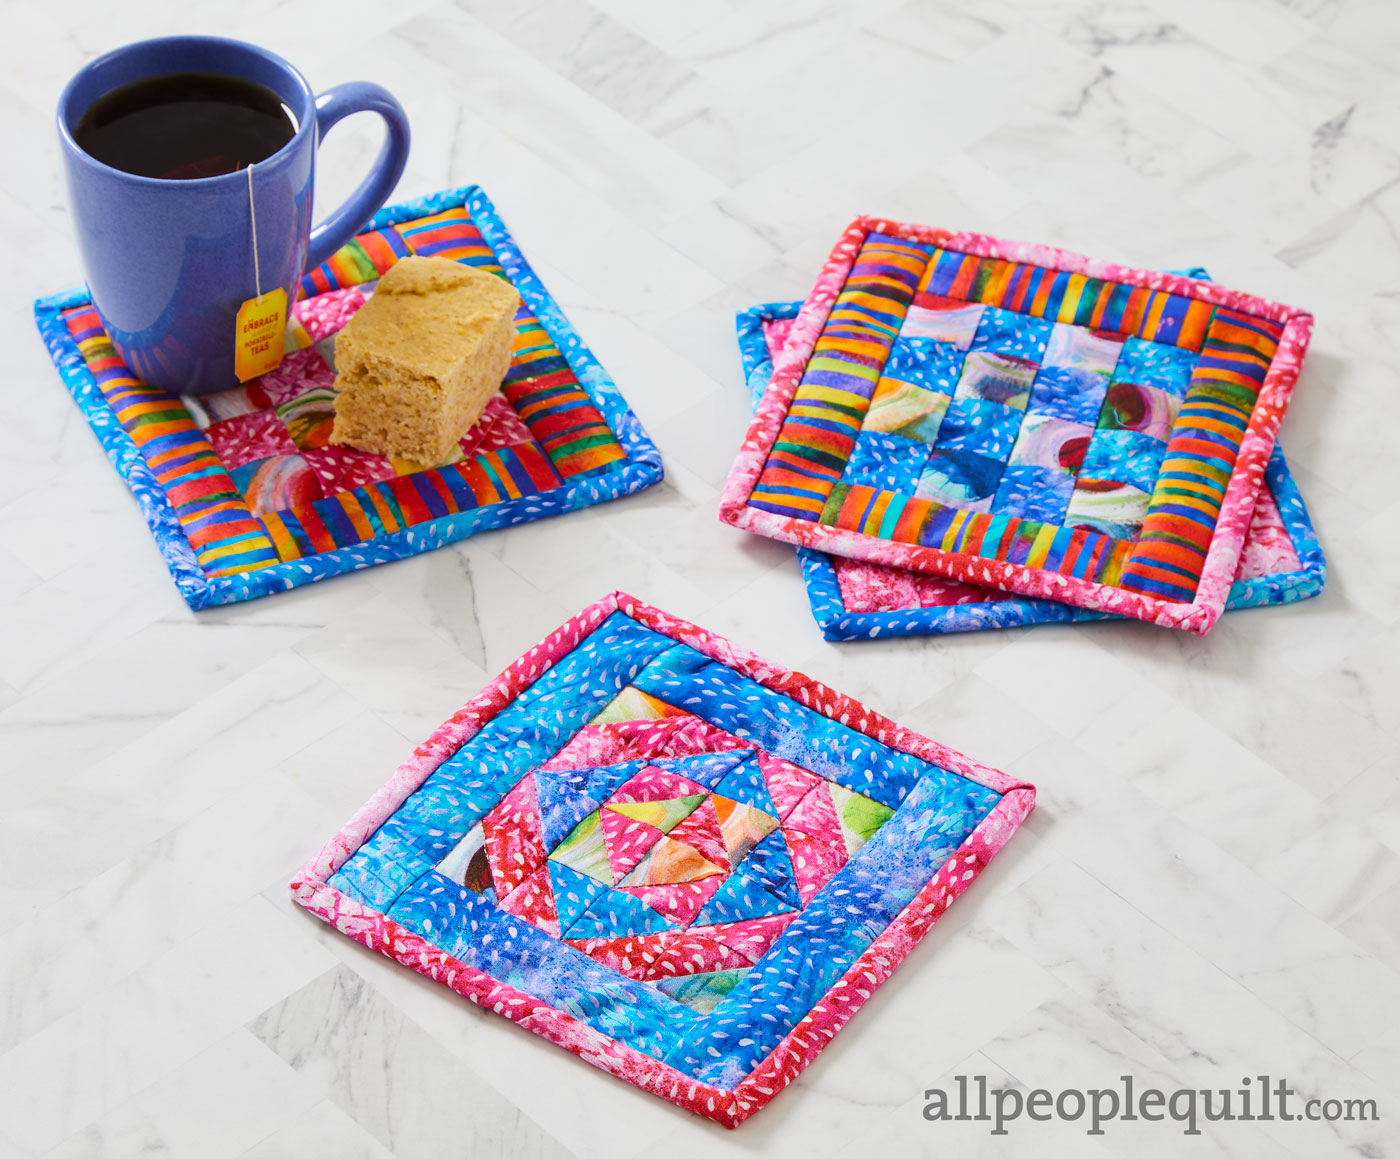 colorful mug rugs